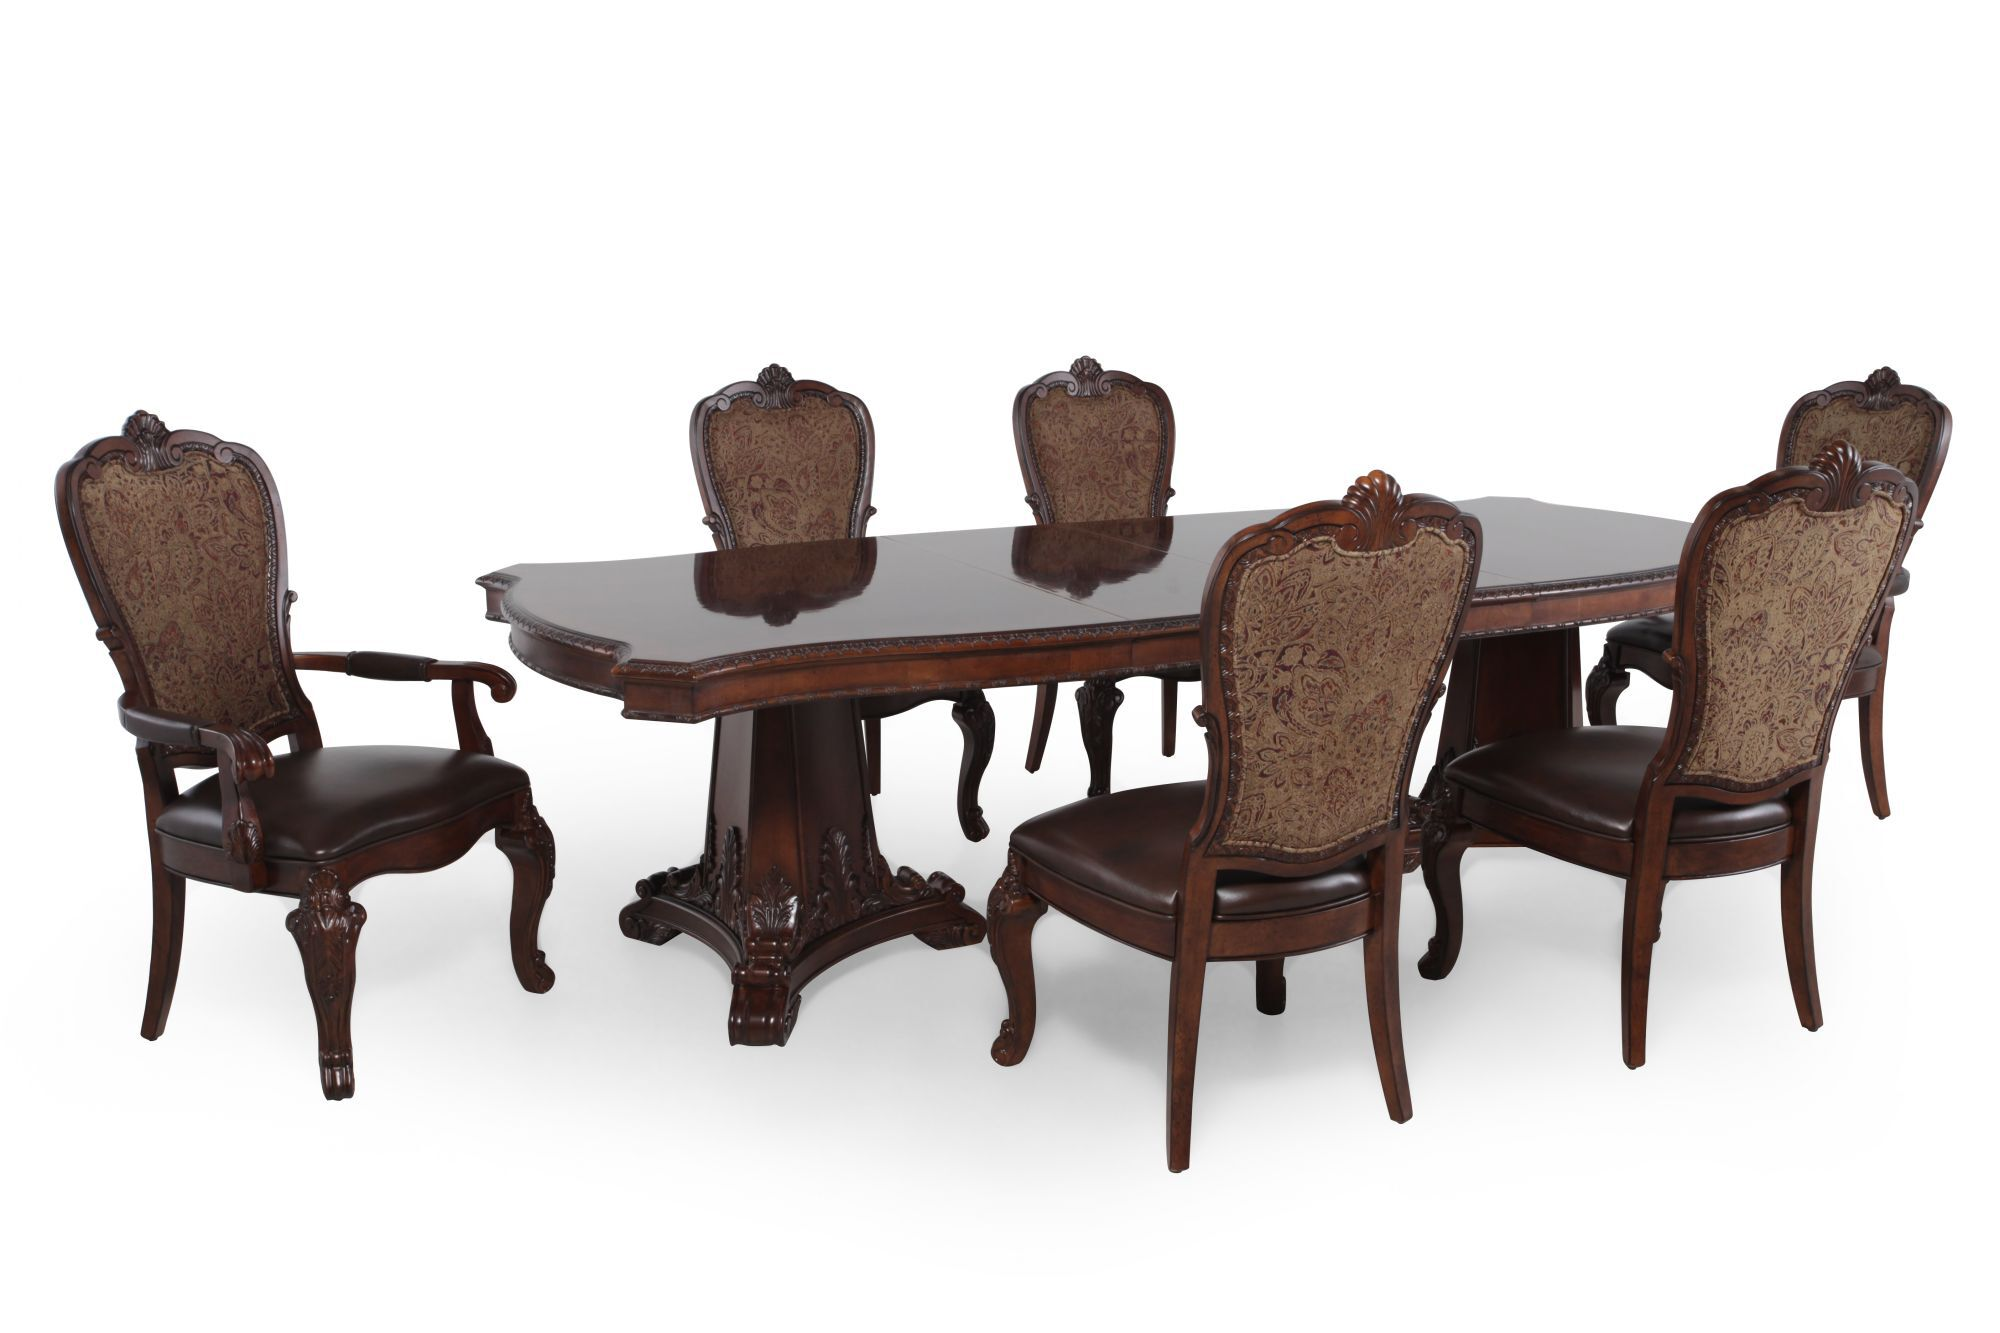 Charming A.R.T. Furniture Seven Piece Old World Pedestal Table Dining Set